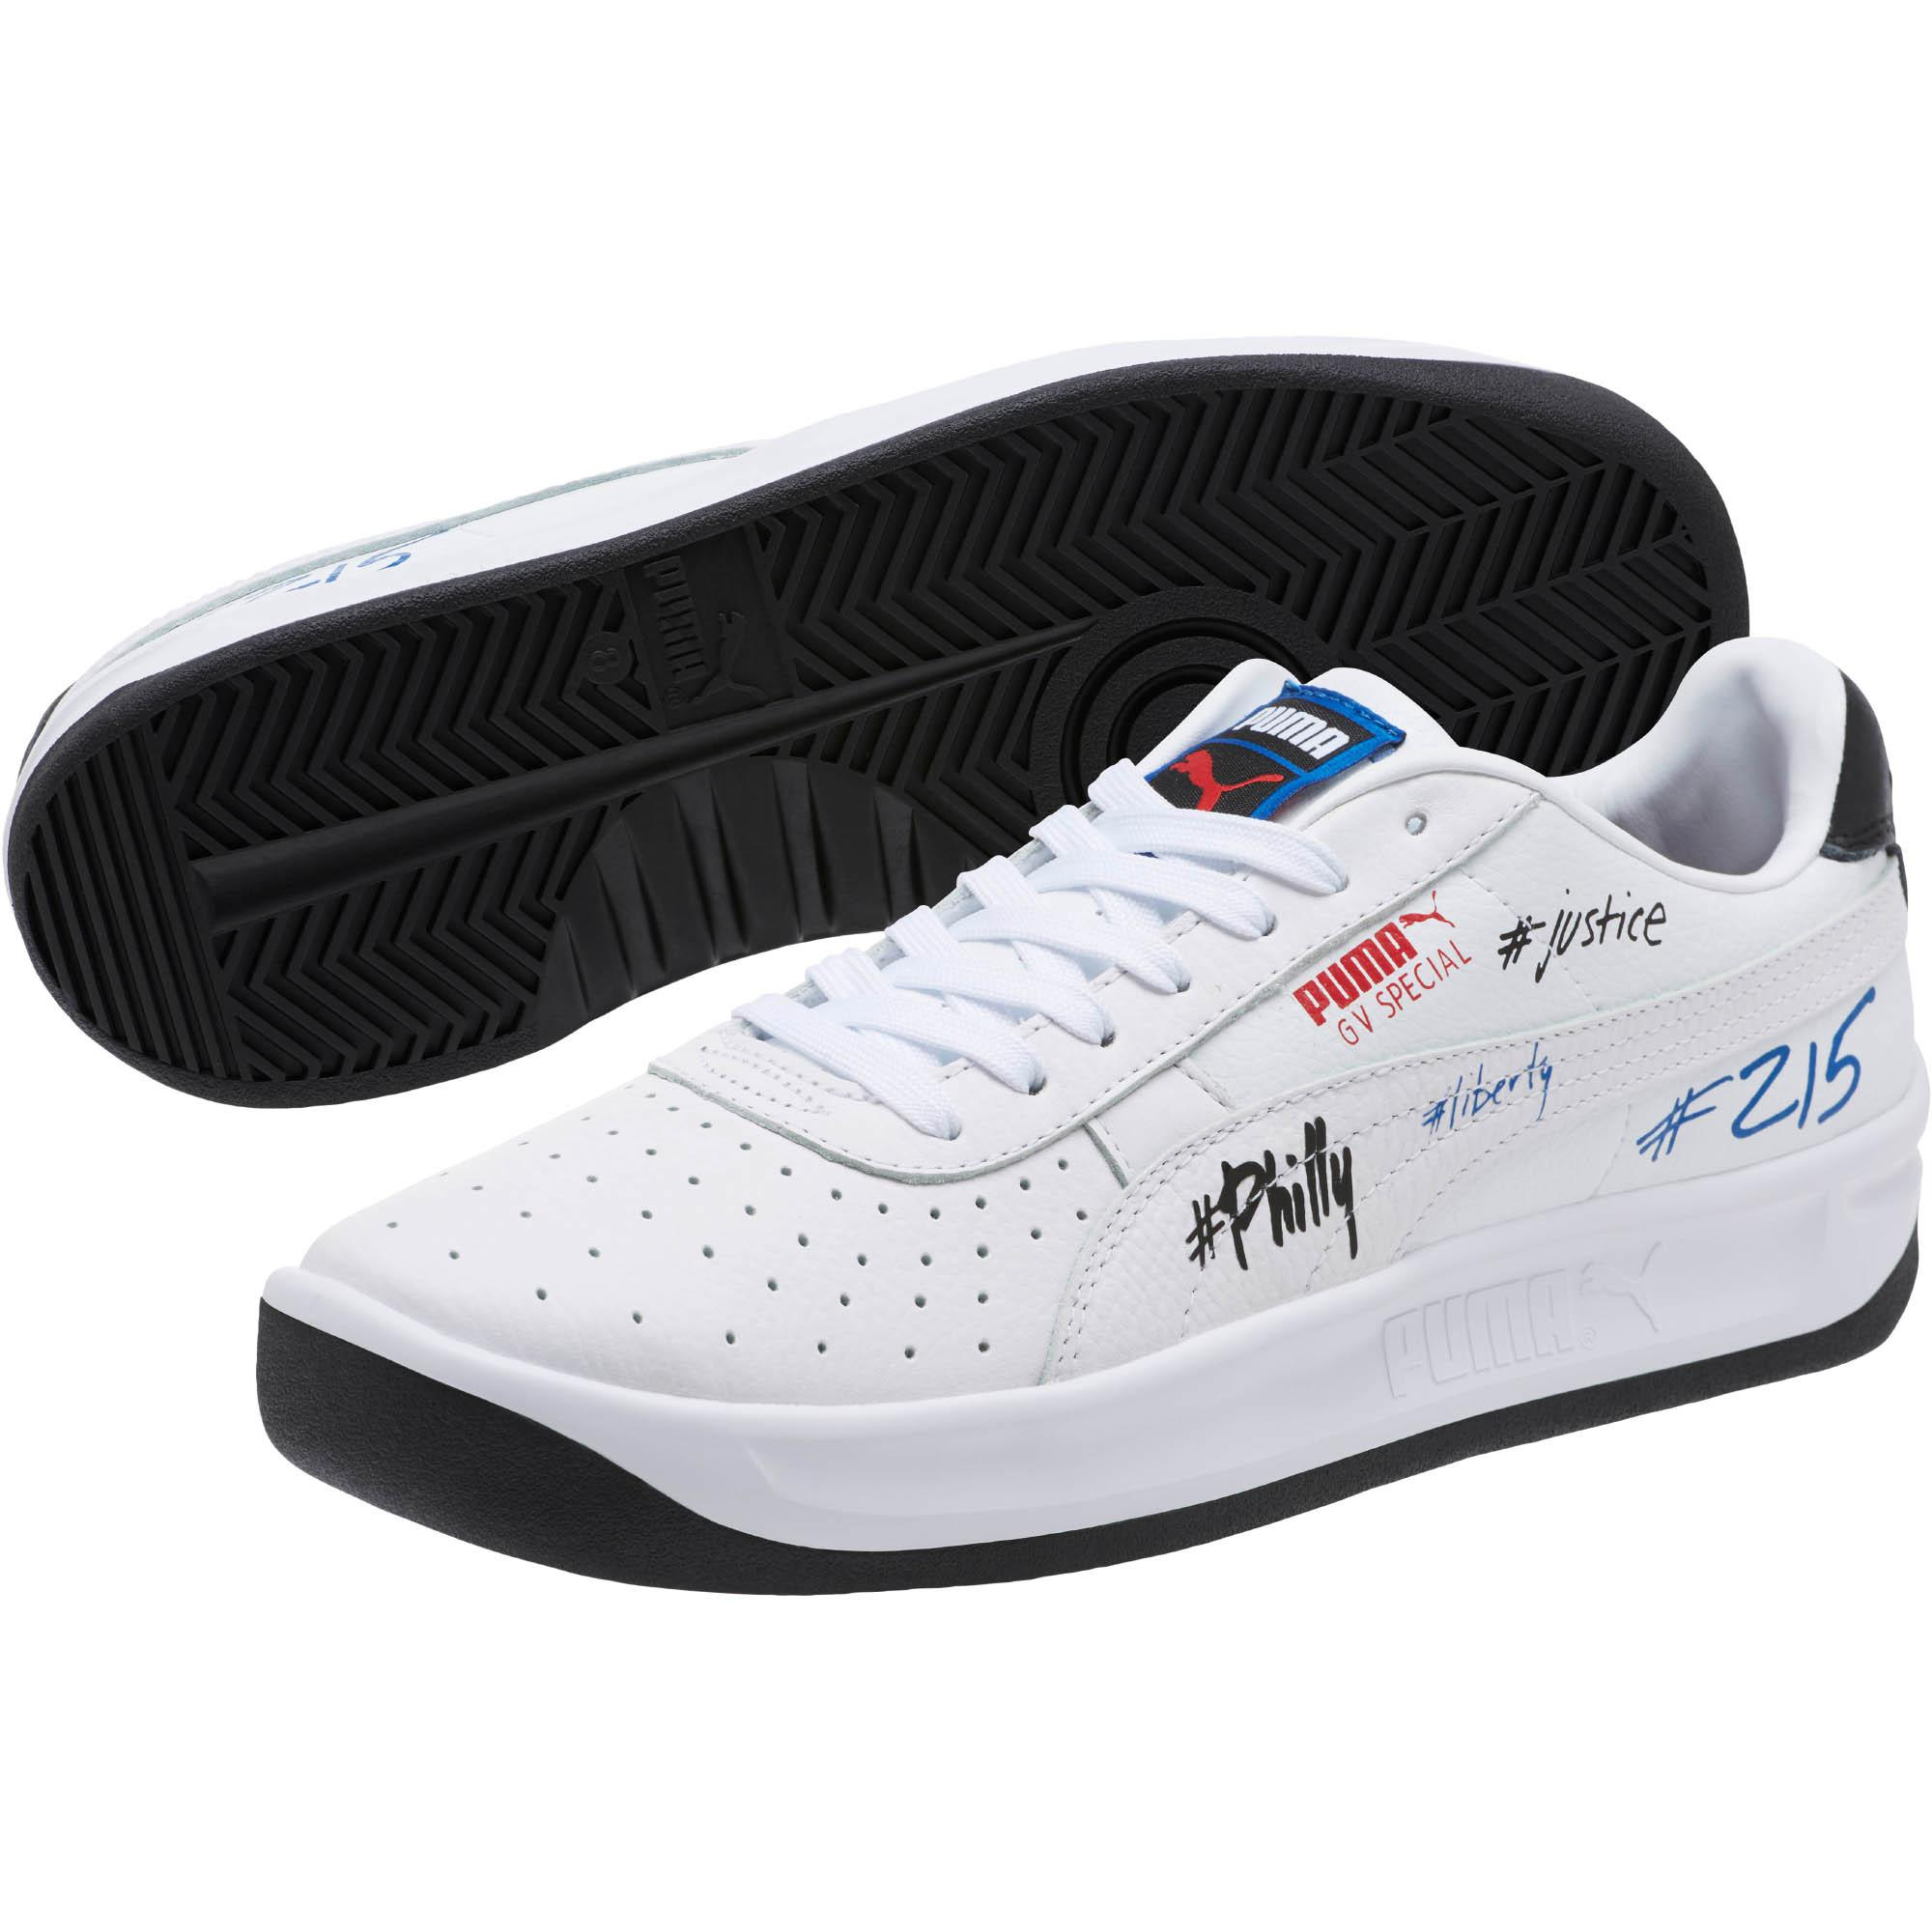 Lyst - PUMA Gv Special Philly Sneakers in White for Men - Save 29% 835be6393